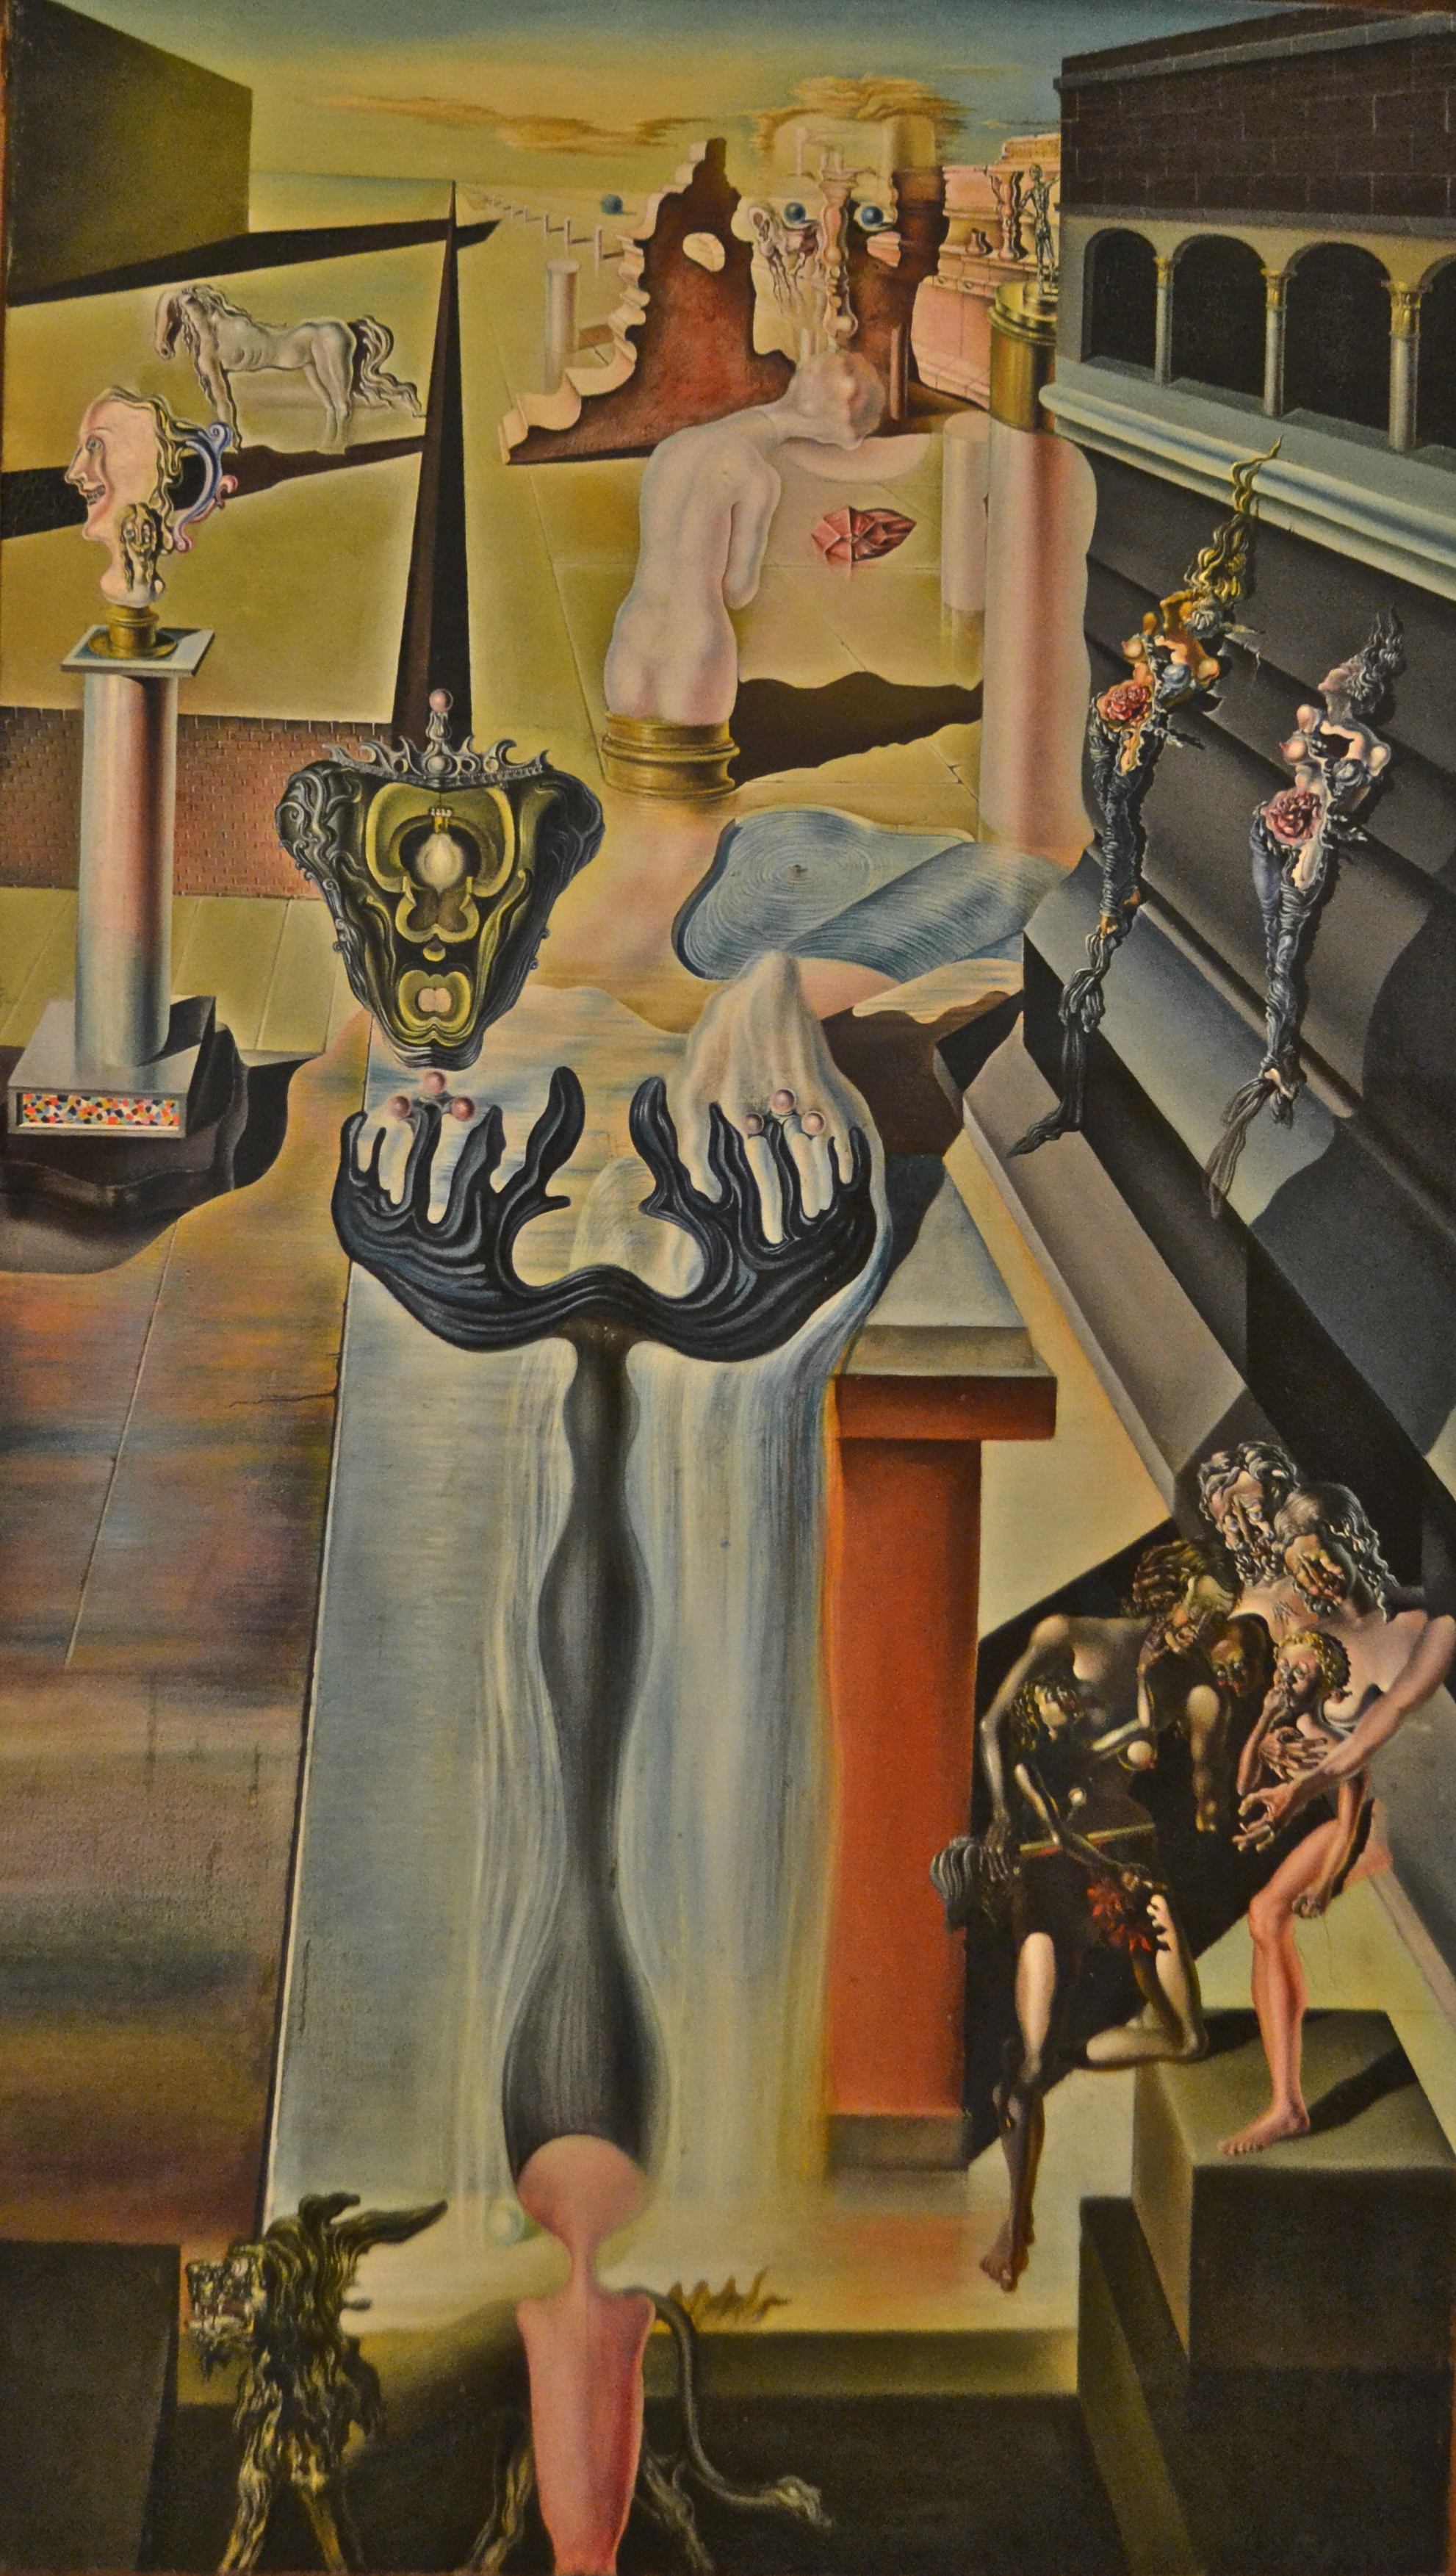 dali s metamorphosis paranoiac critical activity and the artist salvador dali